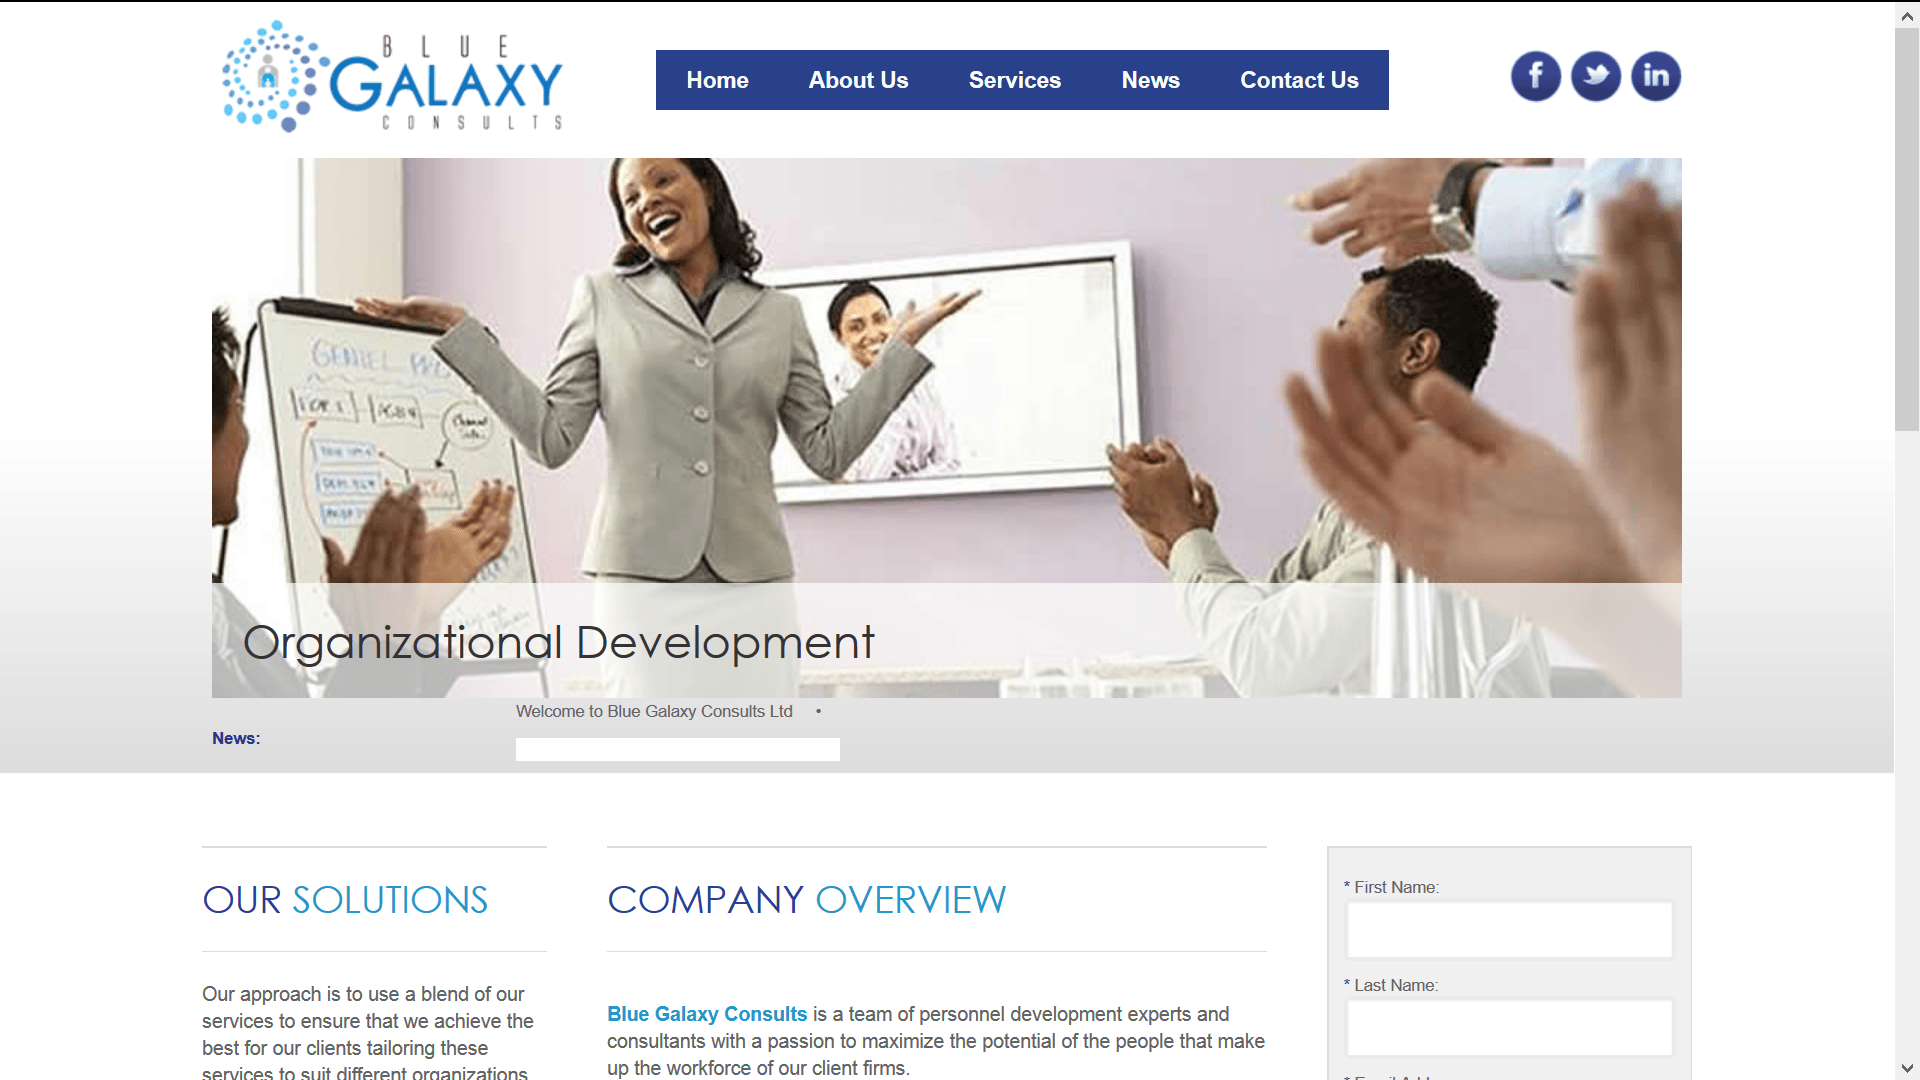 Blue Galaxy Consults Ltd